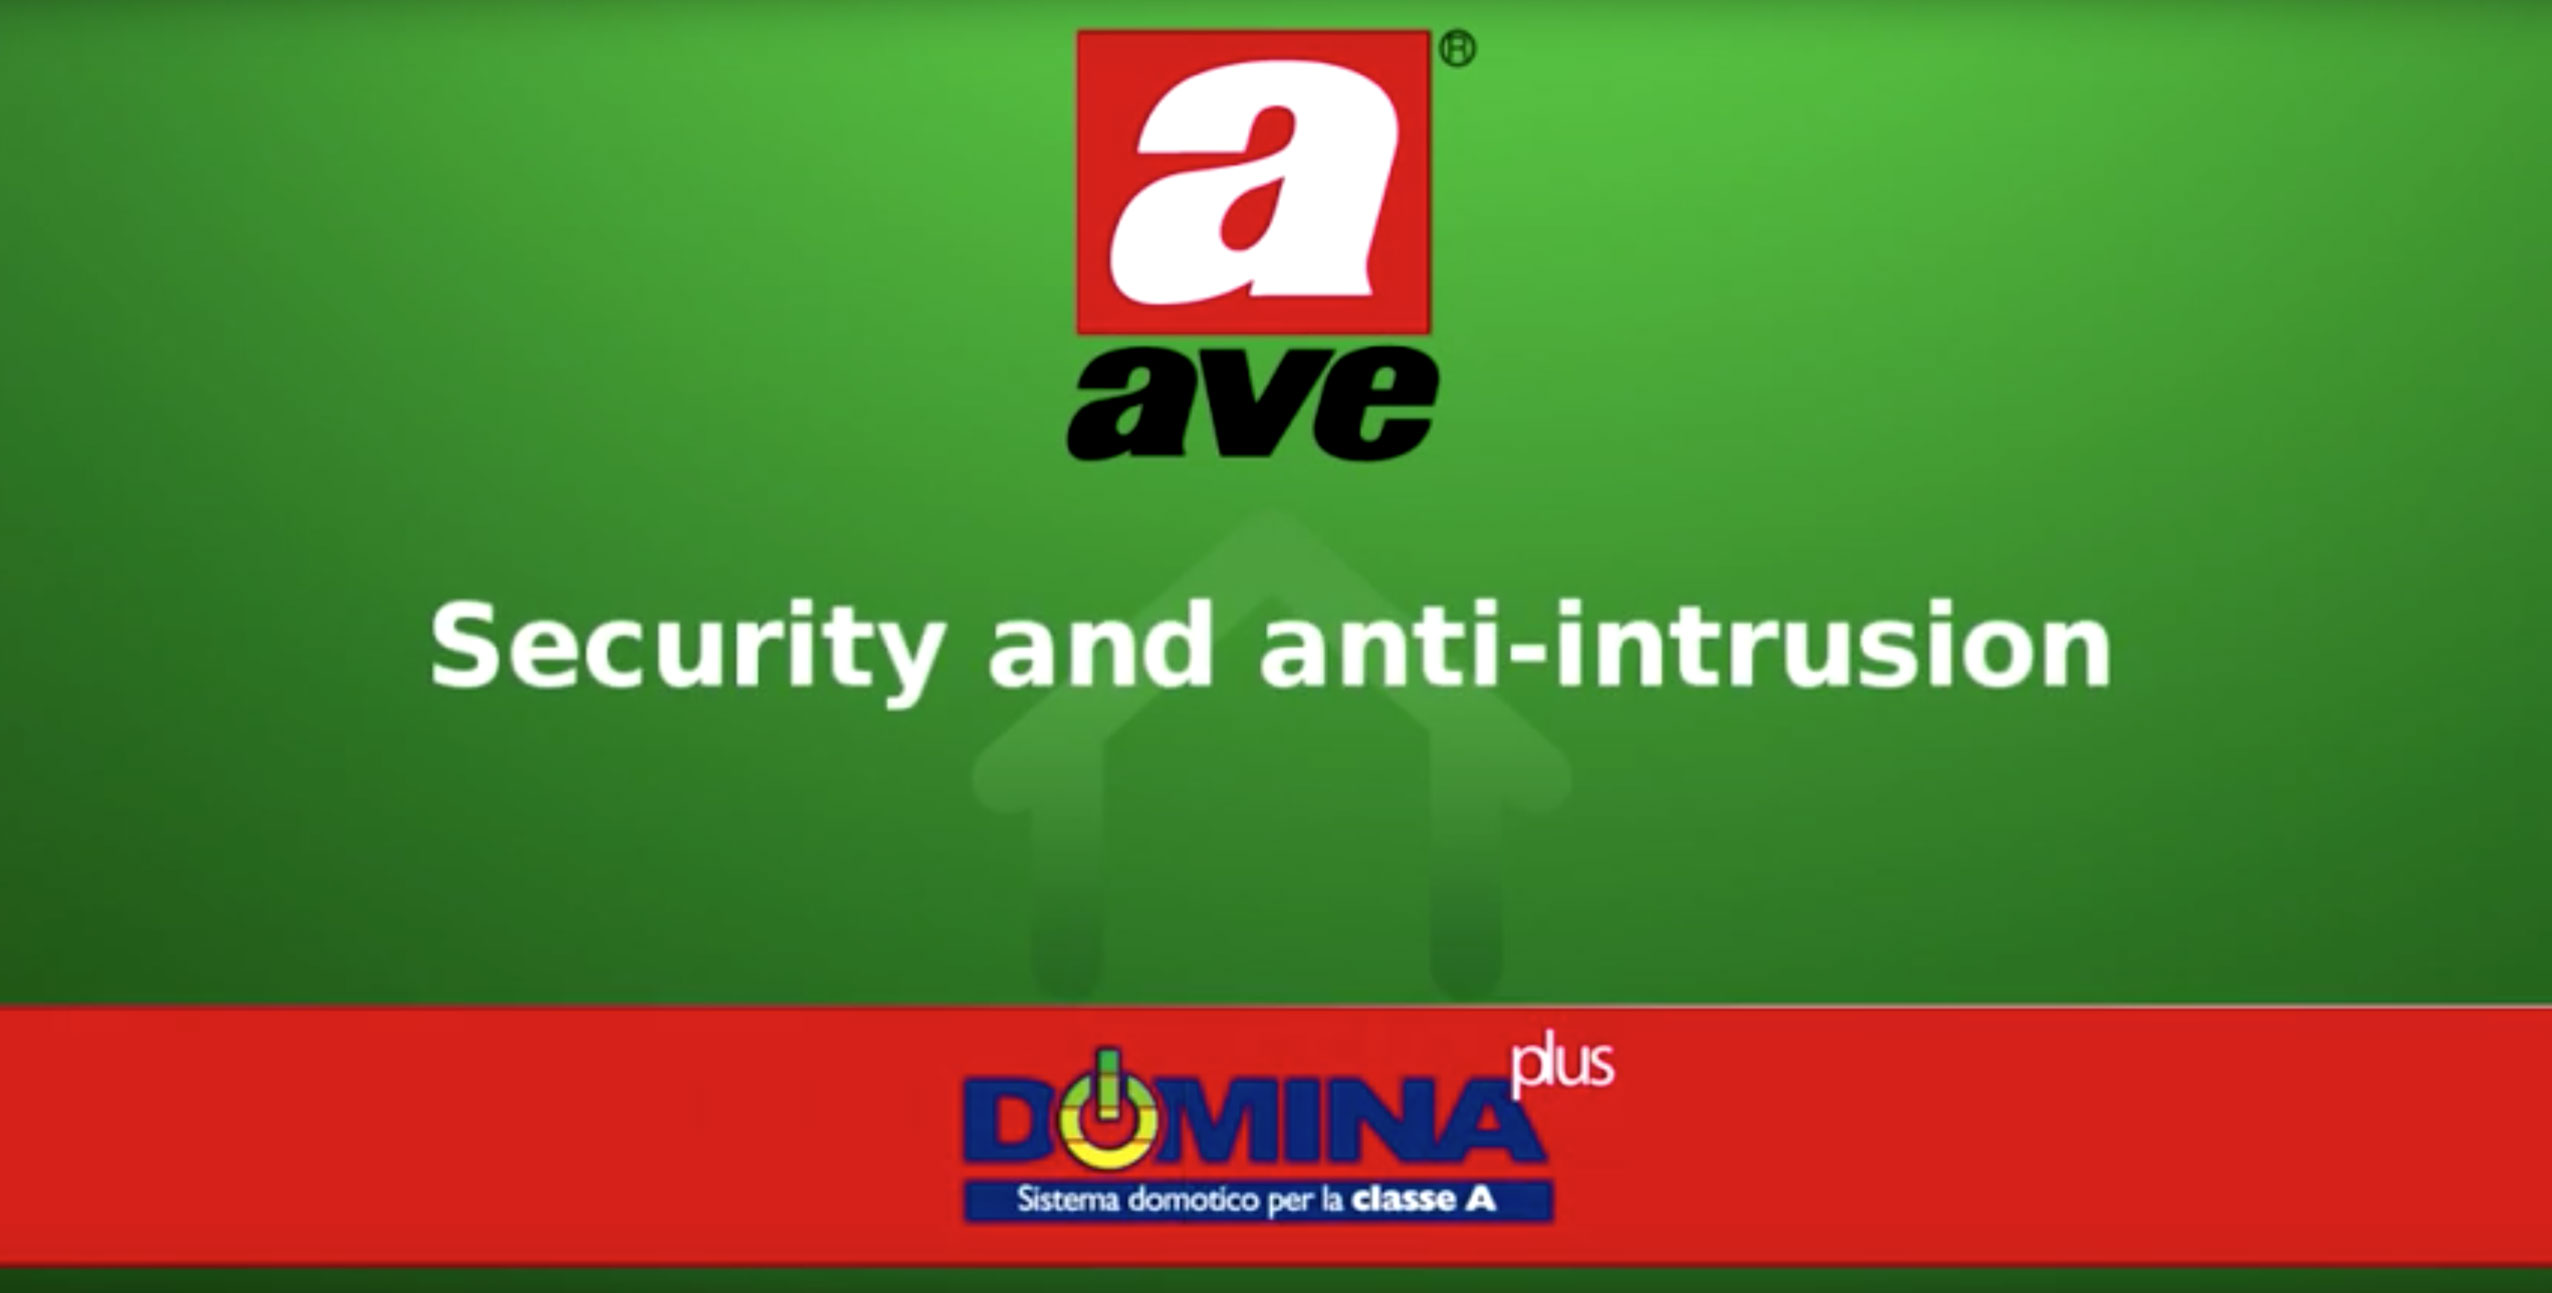 Home automation AVE DOMINA plus – Security and anti-intrusion video